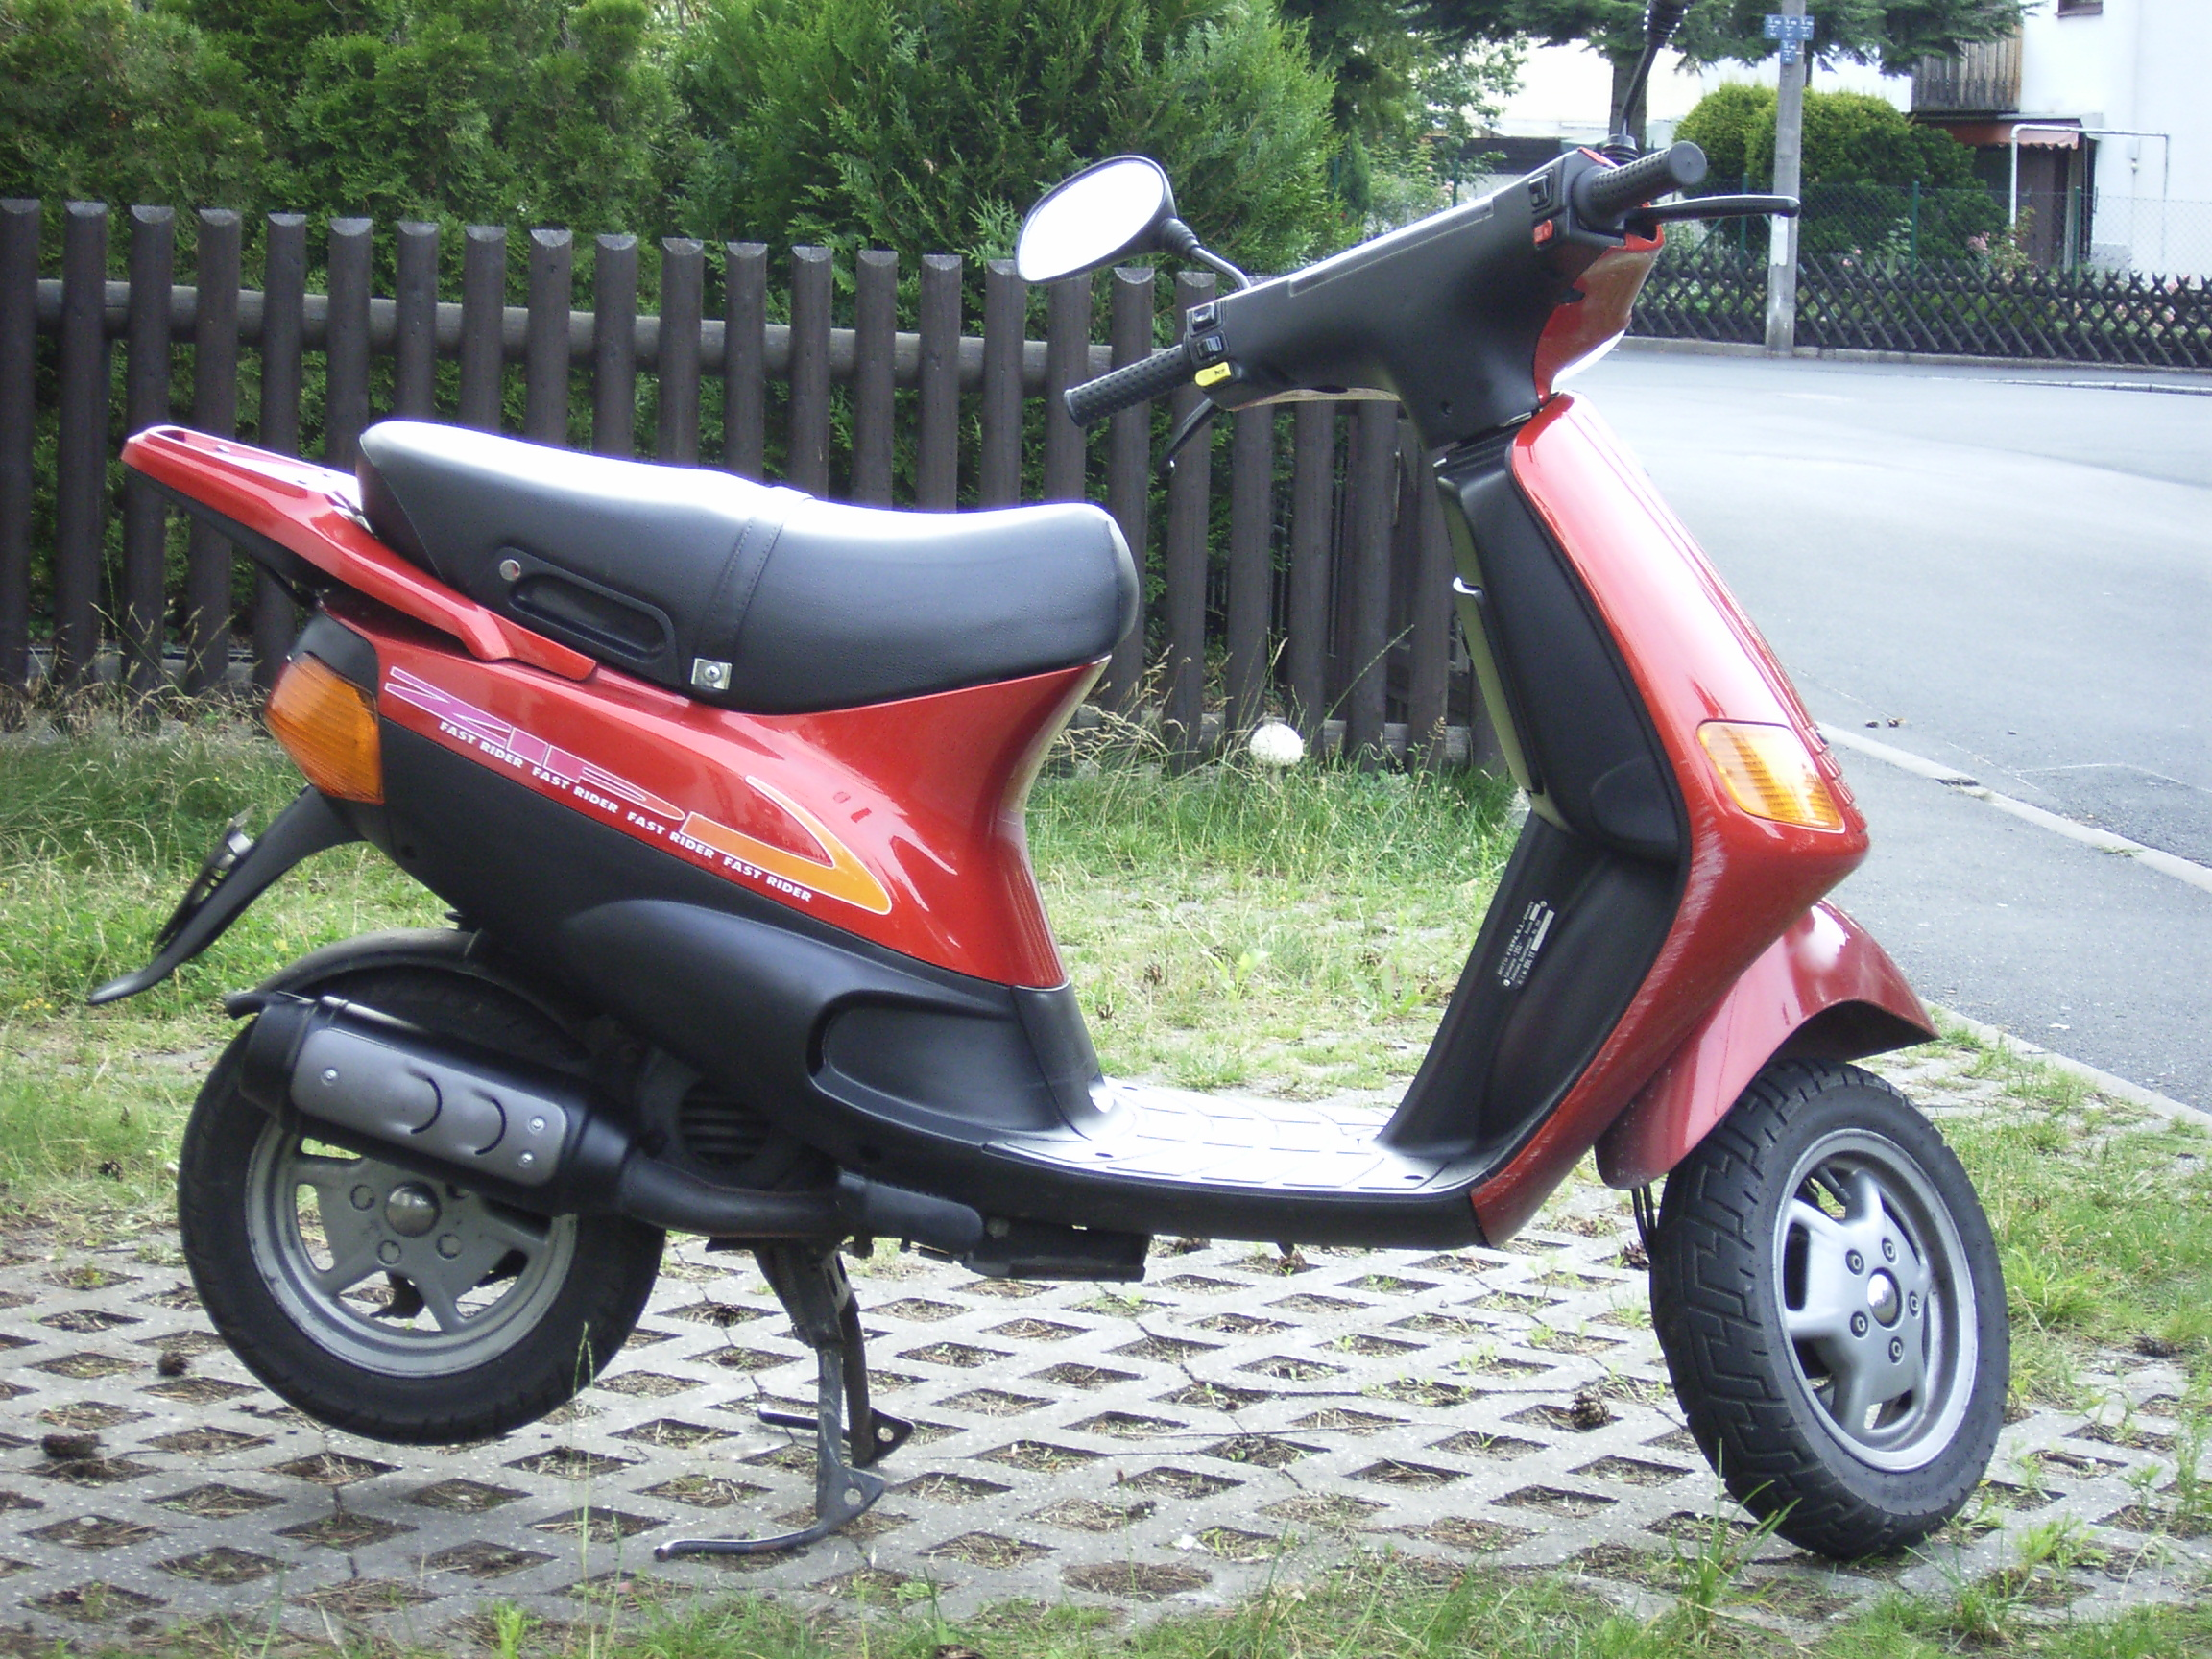 Polini 50cc Engine Diagram 2005 Wiring Libraries Peugeot Looxor 50 Library